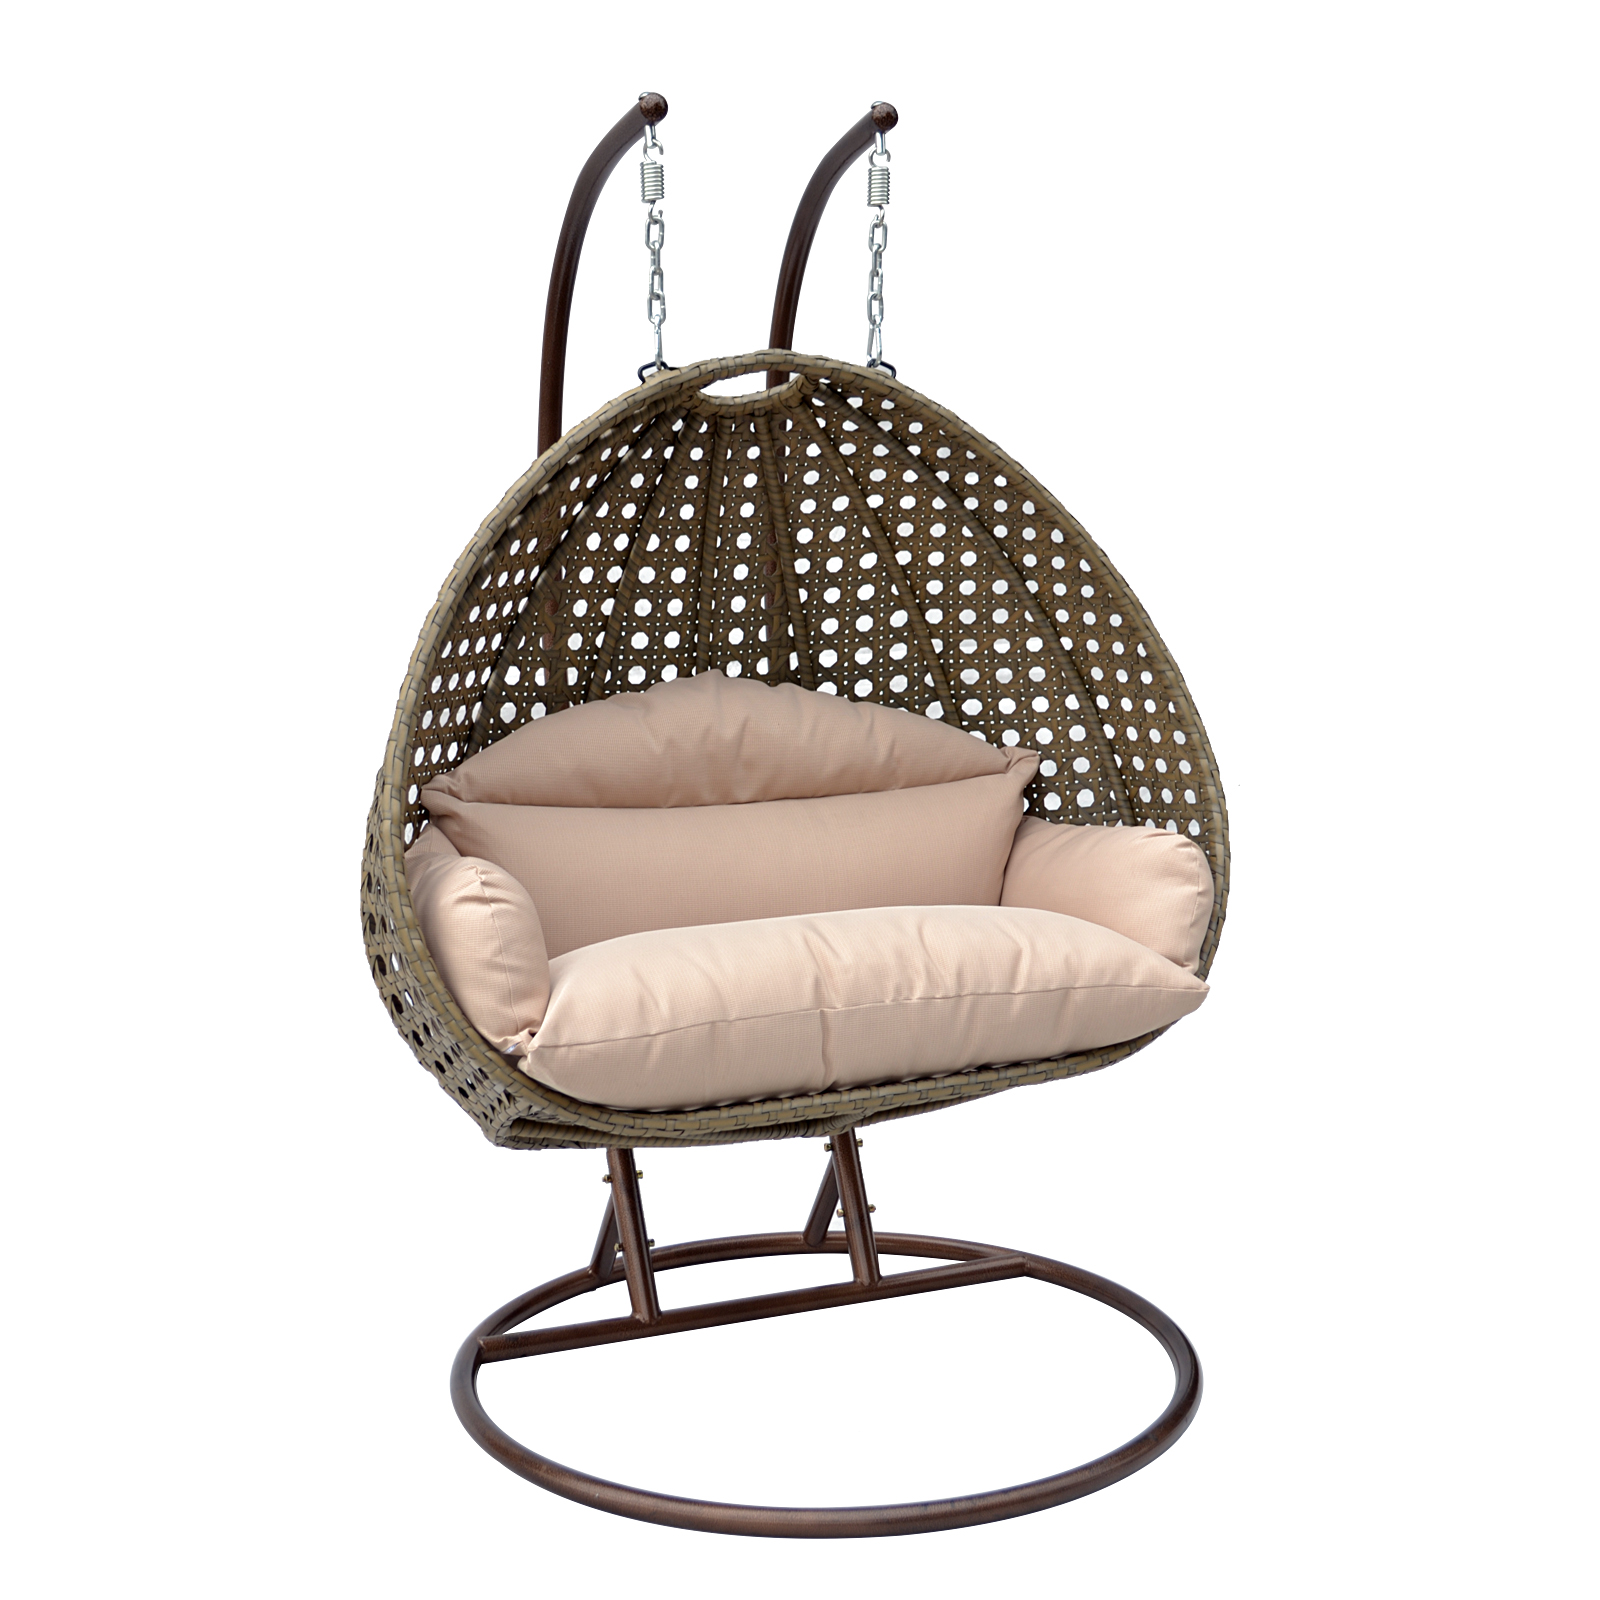 Egg Basket Chair 2 Person Wicker Egg Basket Swing Chair Patio Outdoor